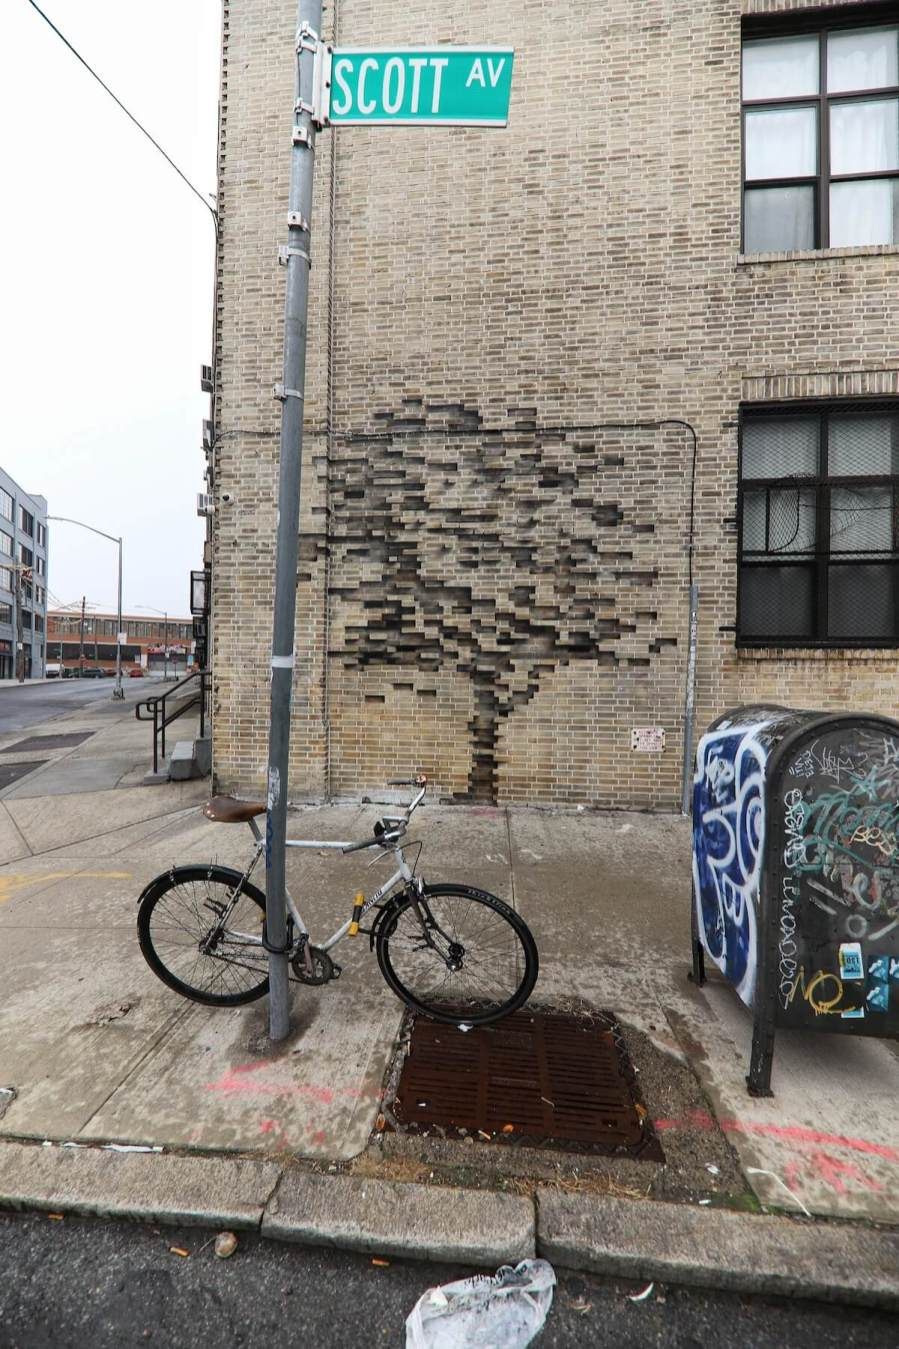 pejac-street-art-tree-Bushwick-new-york-pc-just-a-spectator-5